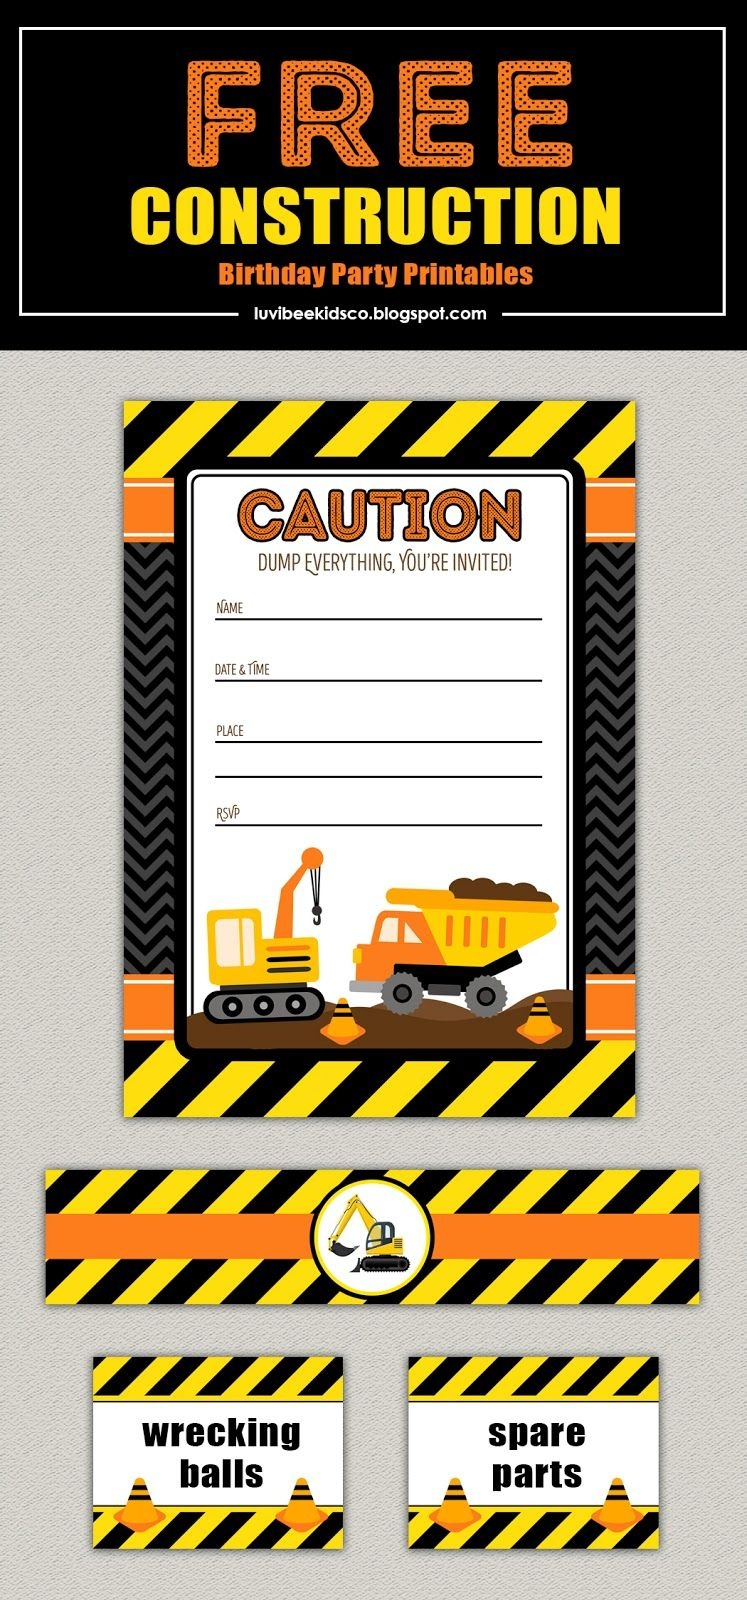 Free Construction Birthday Party Printables. Construction Party - Free Printable Construction Invitations